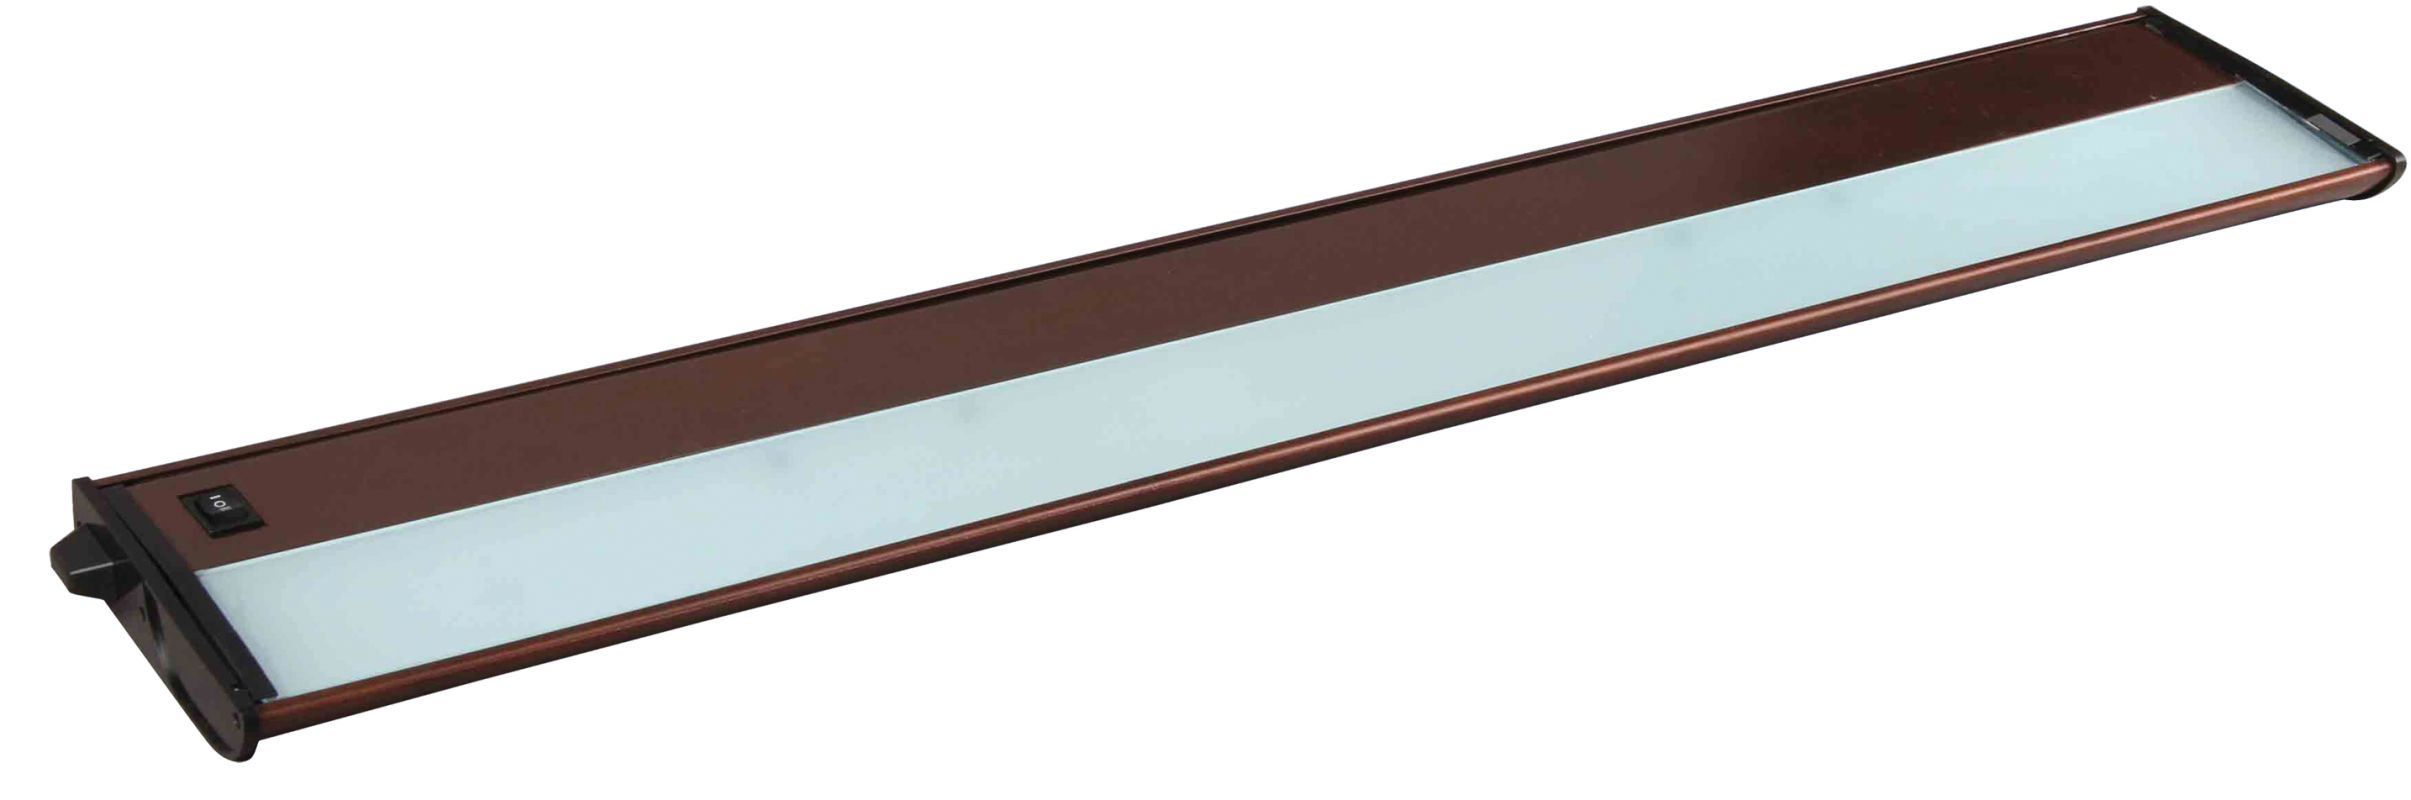 "Maxim 87844 40"" 5 Light Linkable Xenon Under Cabinet Light from the"